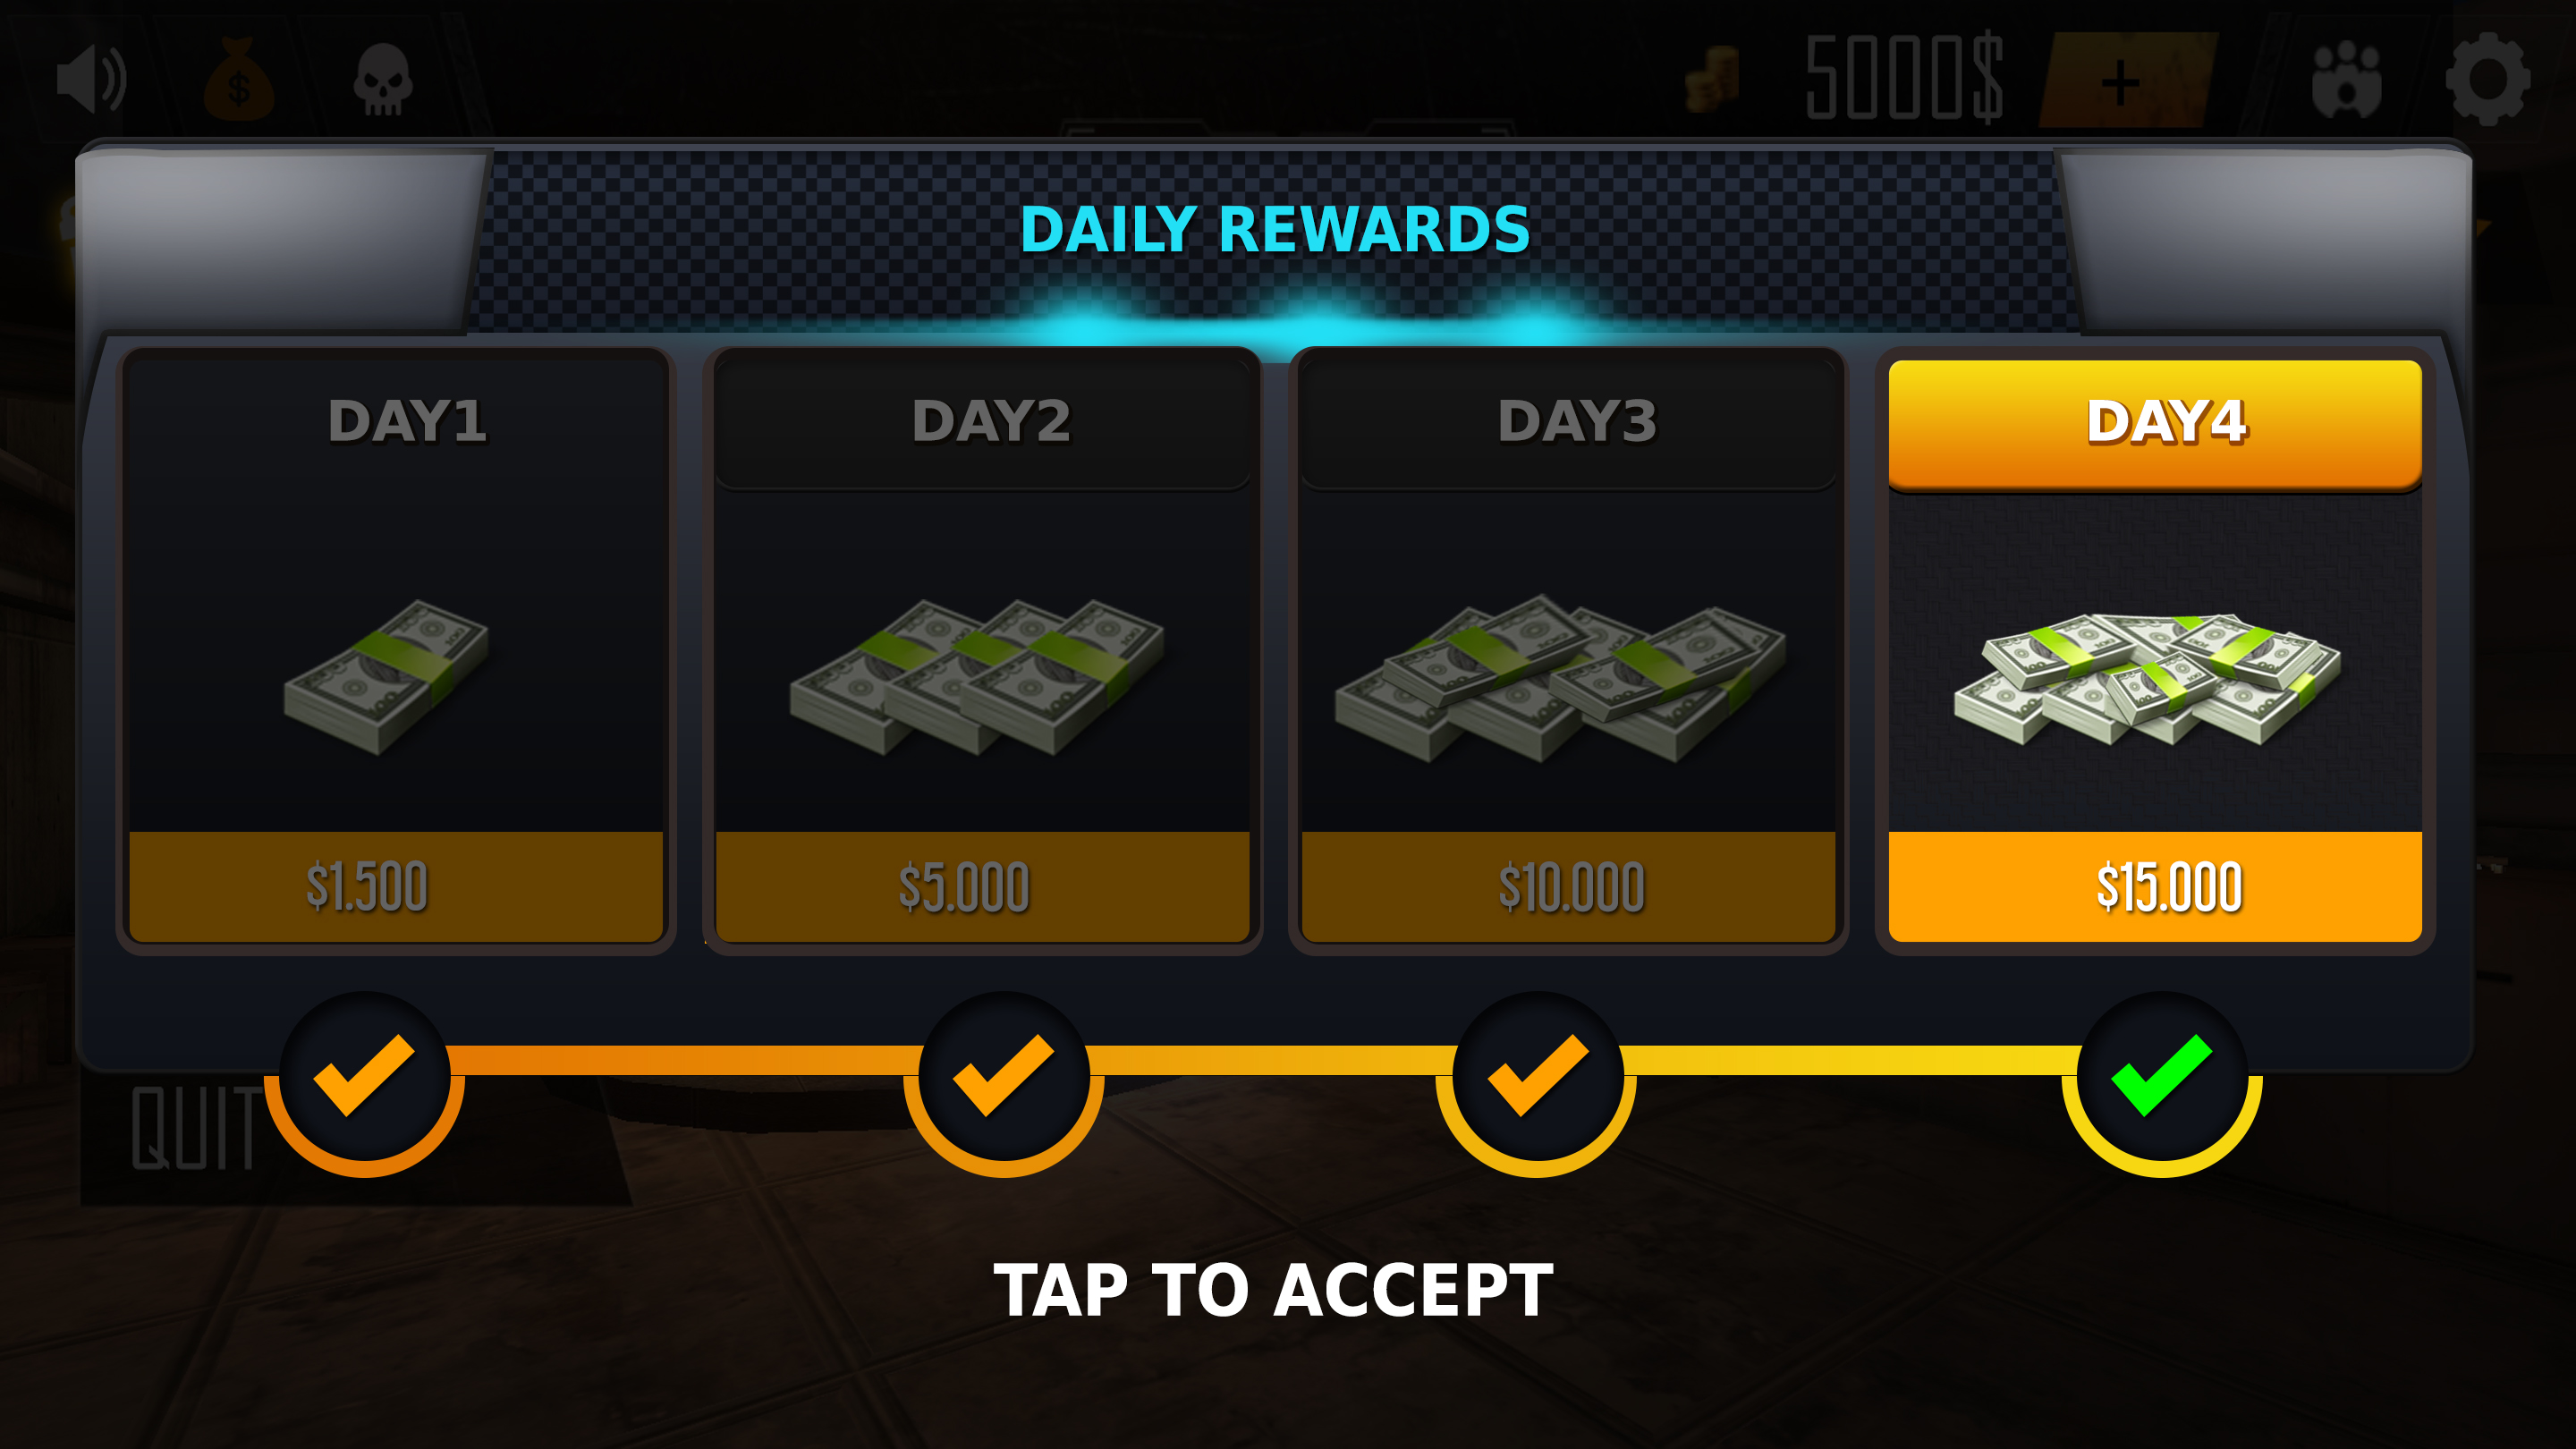 Mobile game UI (Daily Rewards)